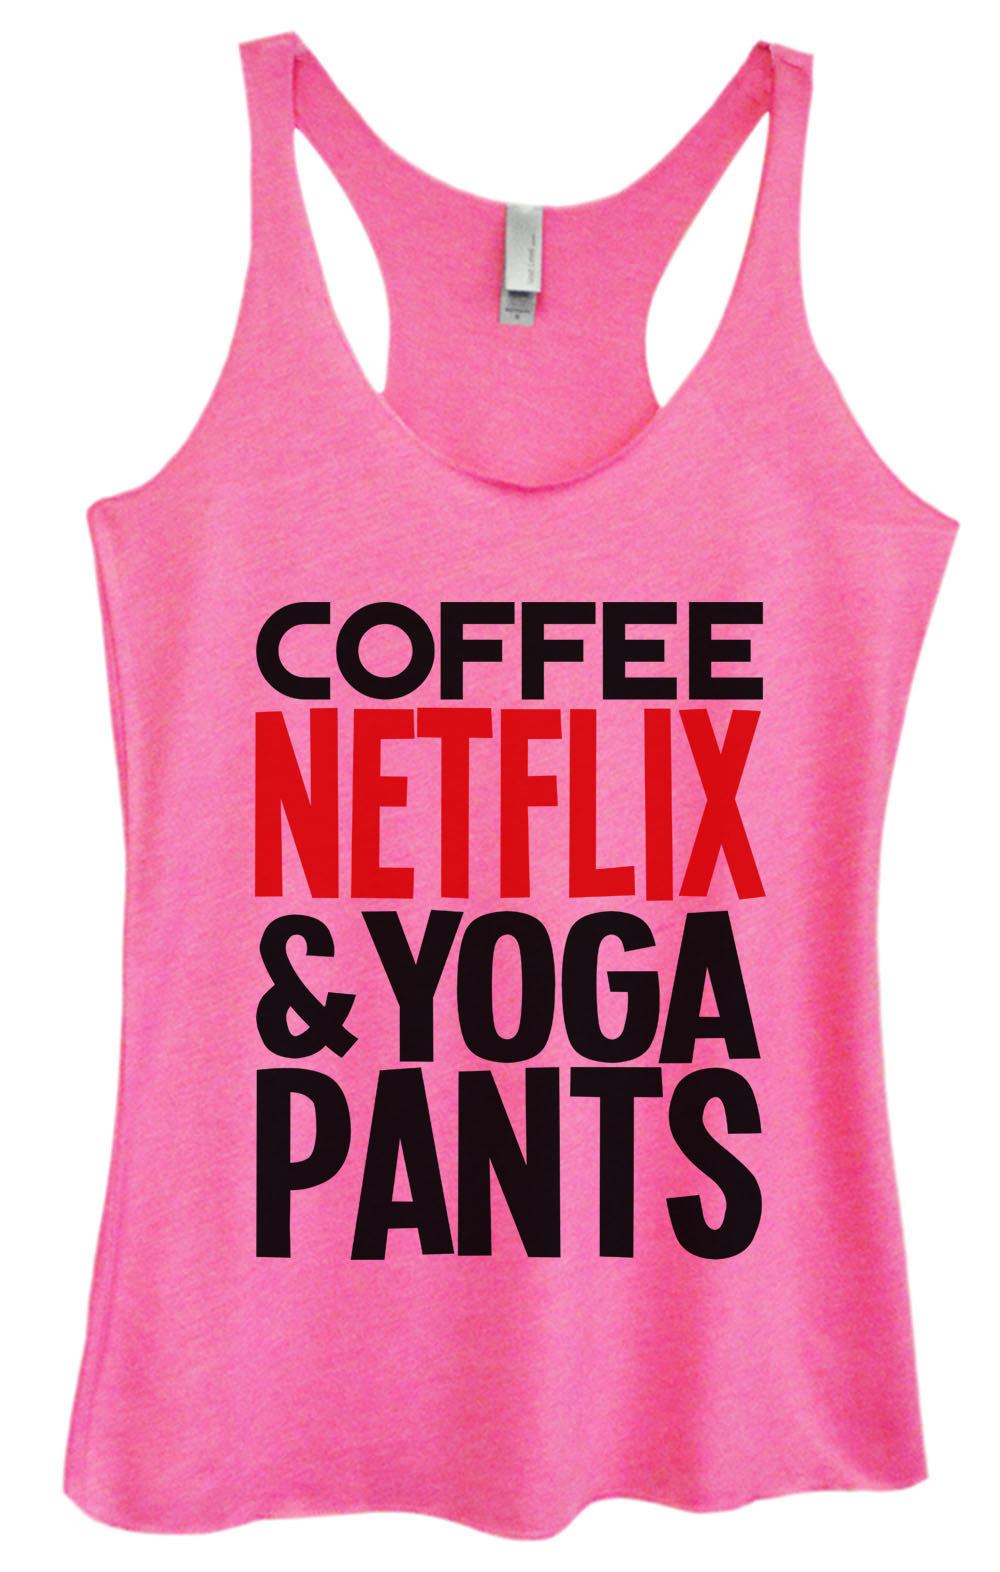 Womens Fashion Triblend Tank Top - Coffee Netflix & Yoga Pants - Tri-995 - Funny Shirts Tank Tops Burnouts and Triblends  - 4